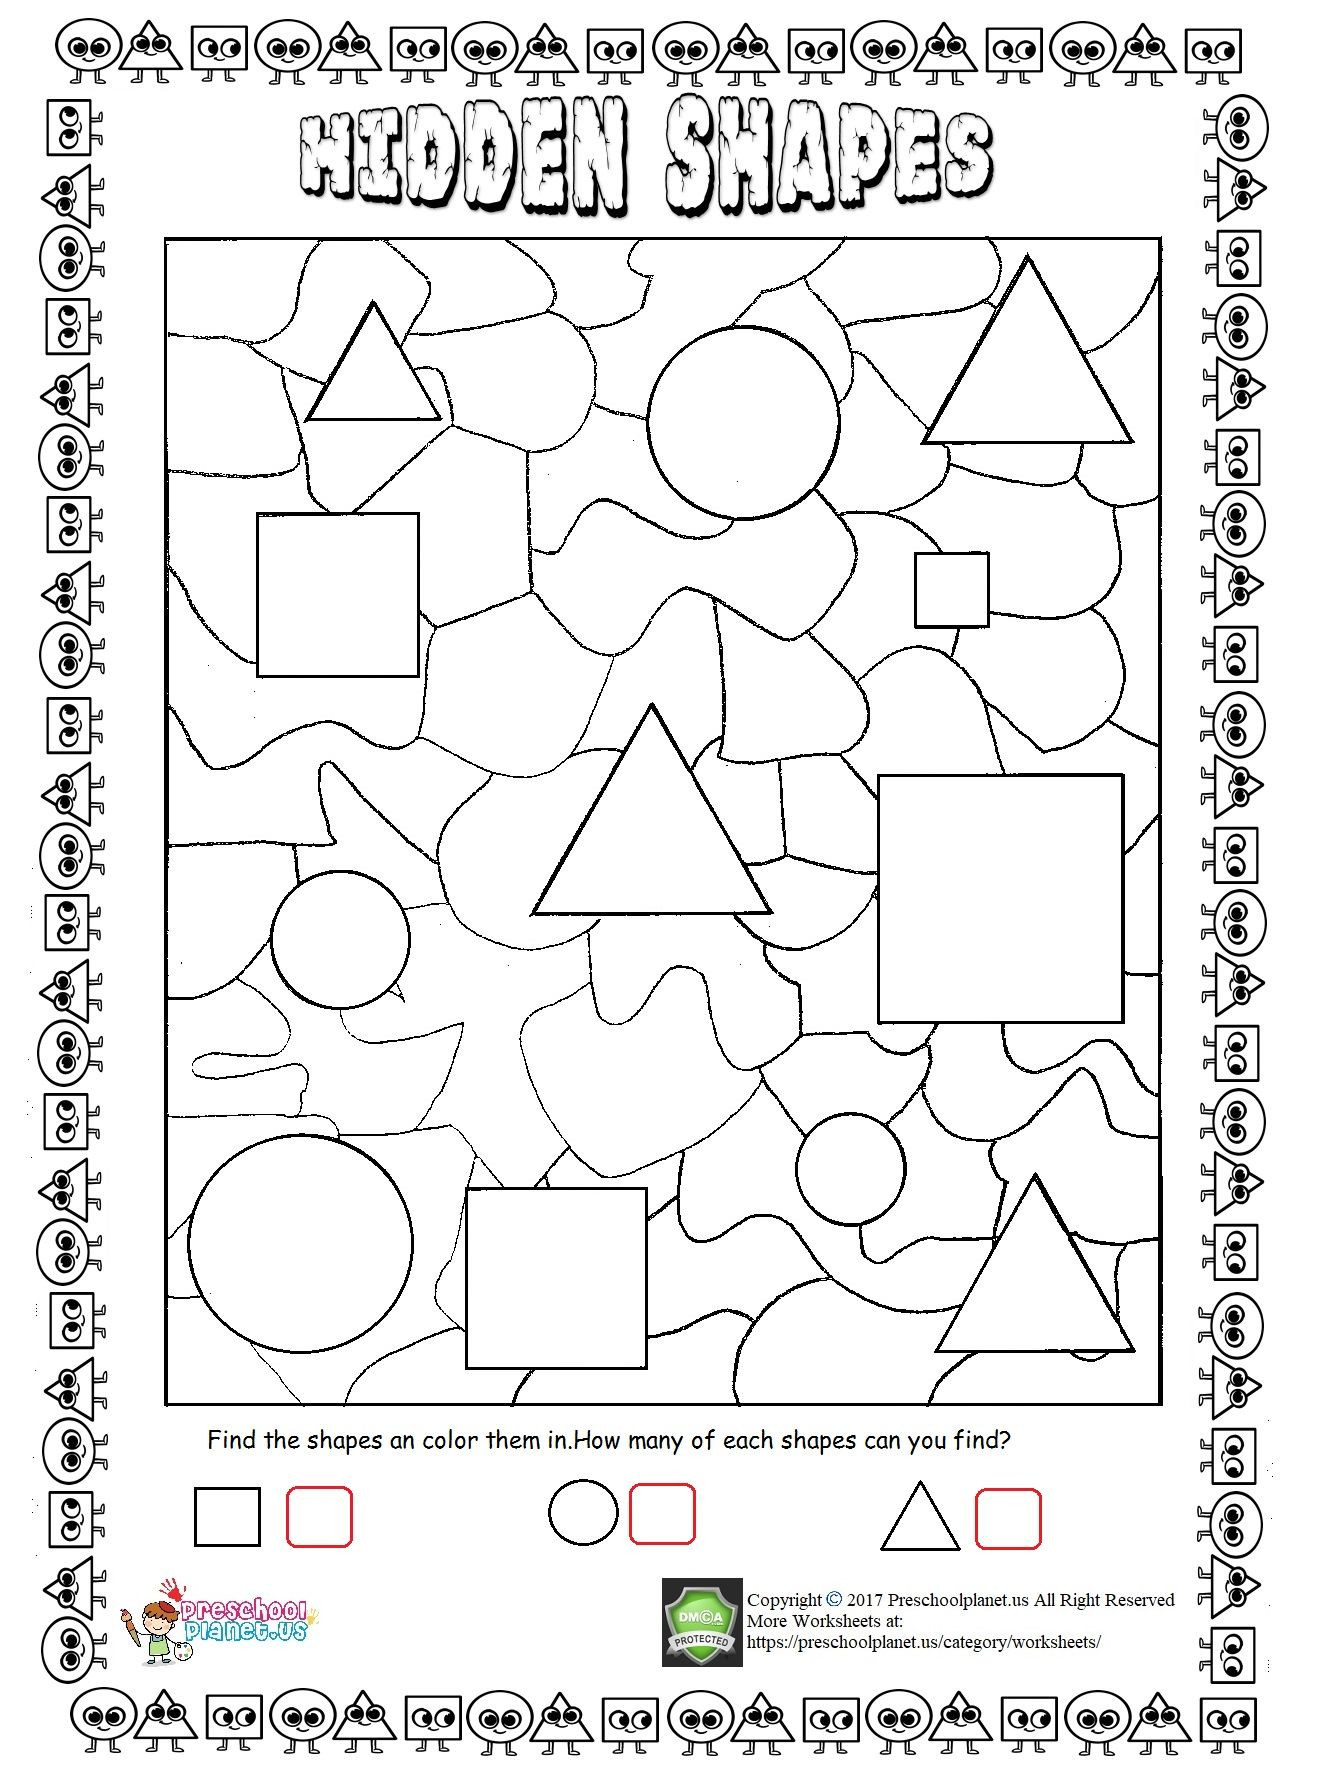 Number Pattern Worksheets 5th Grade Geometric Shapes Patterns Worksheets Printable and Nets